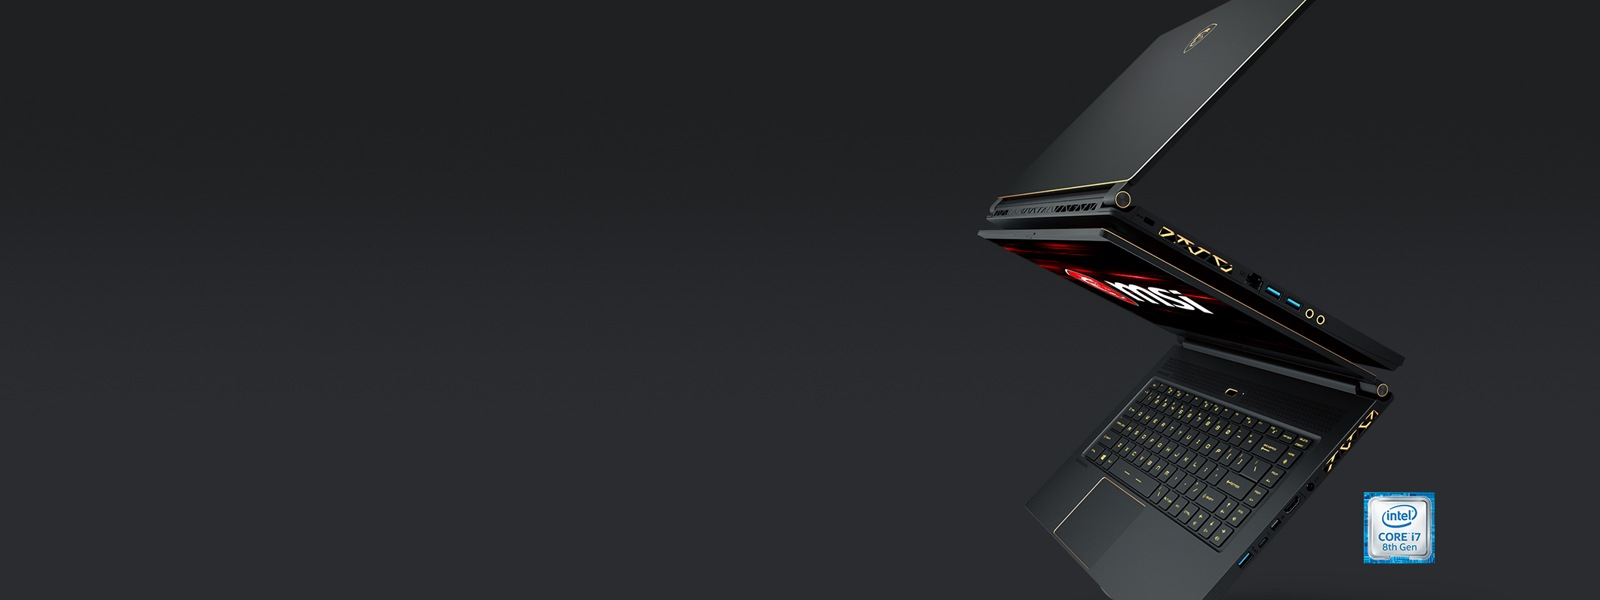 An MSI Stealth GS65 laptop on a dark background.